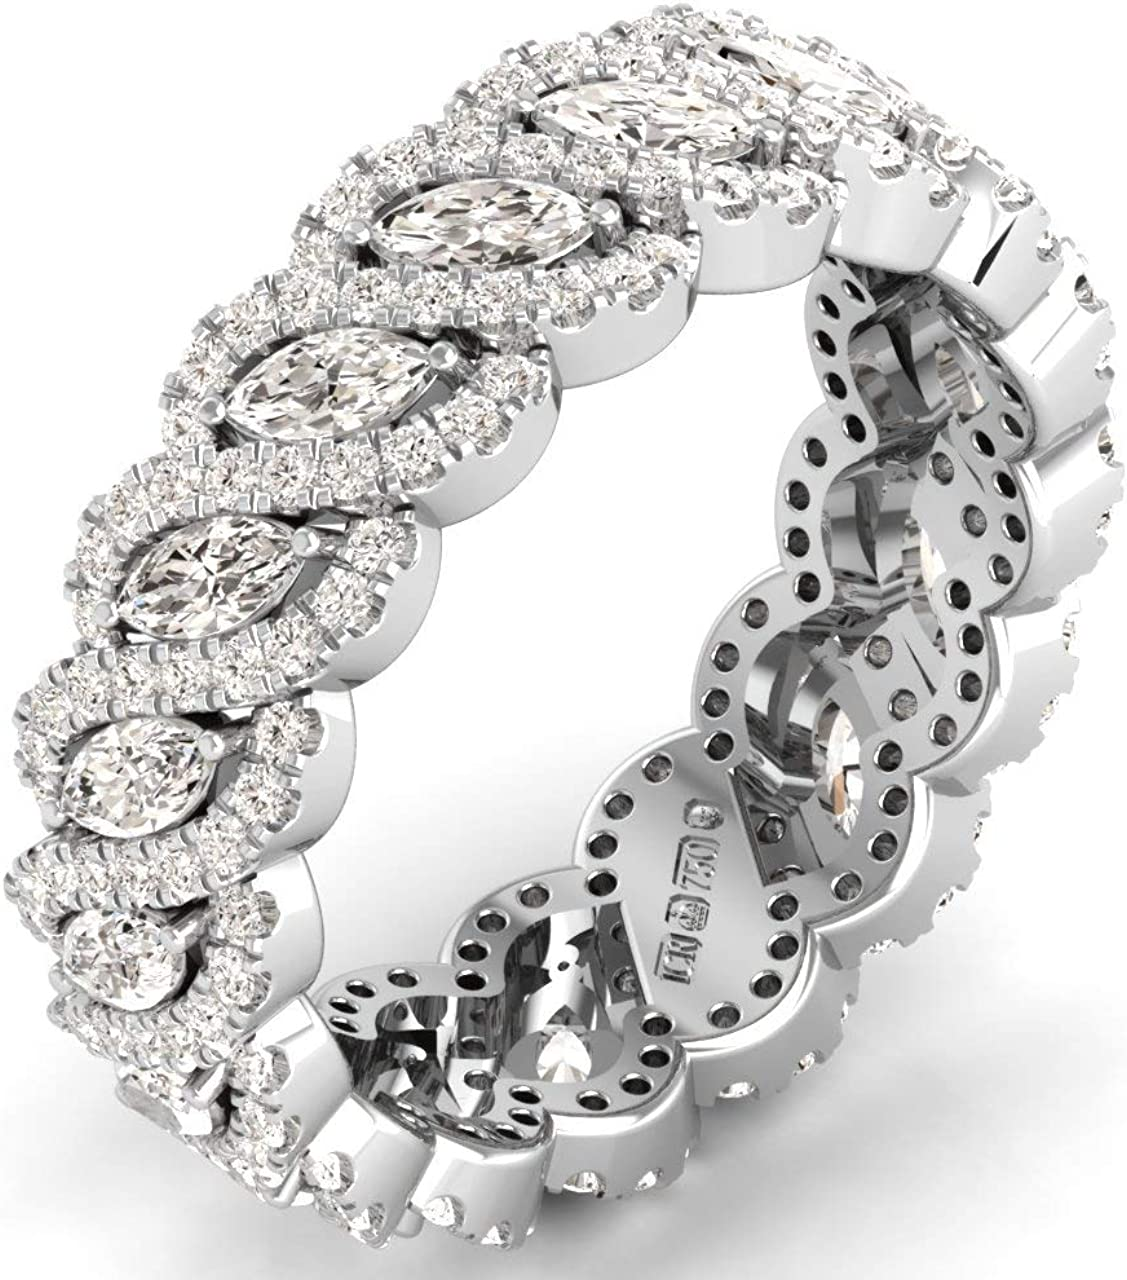 F/VVS Anillo de boda de 2,00 quilates con diamantes redondos y marquesa en platino 950, con sello de Assay Office London.